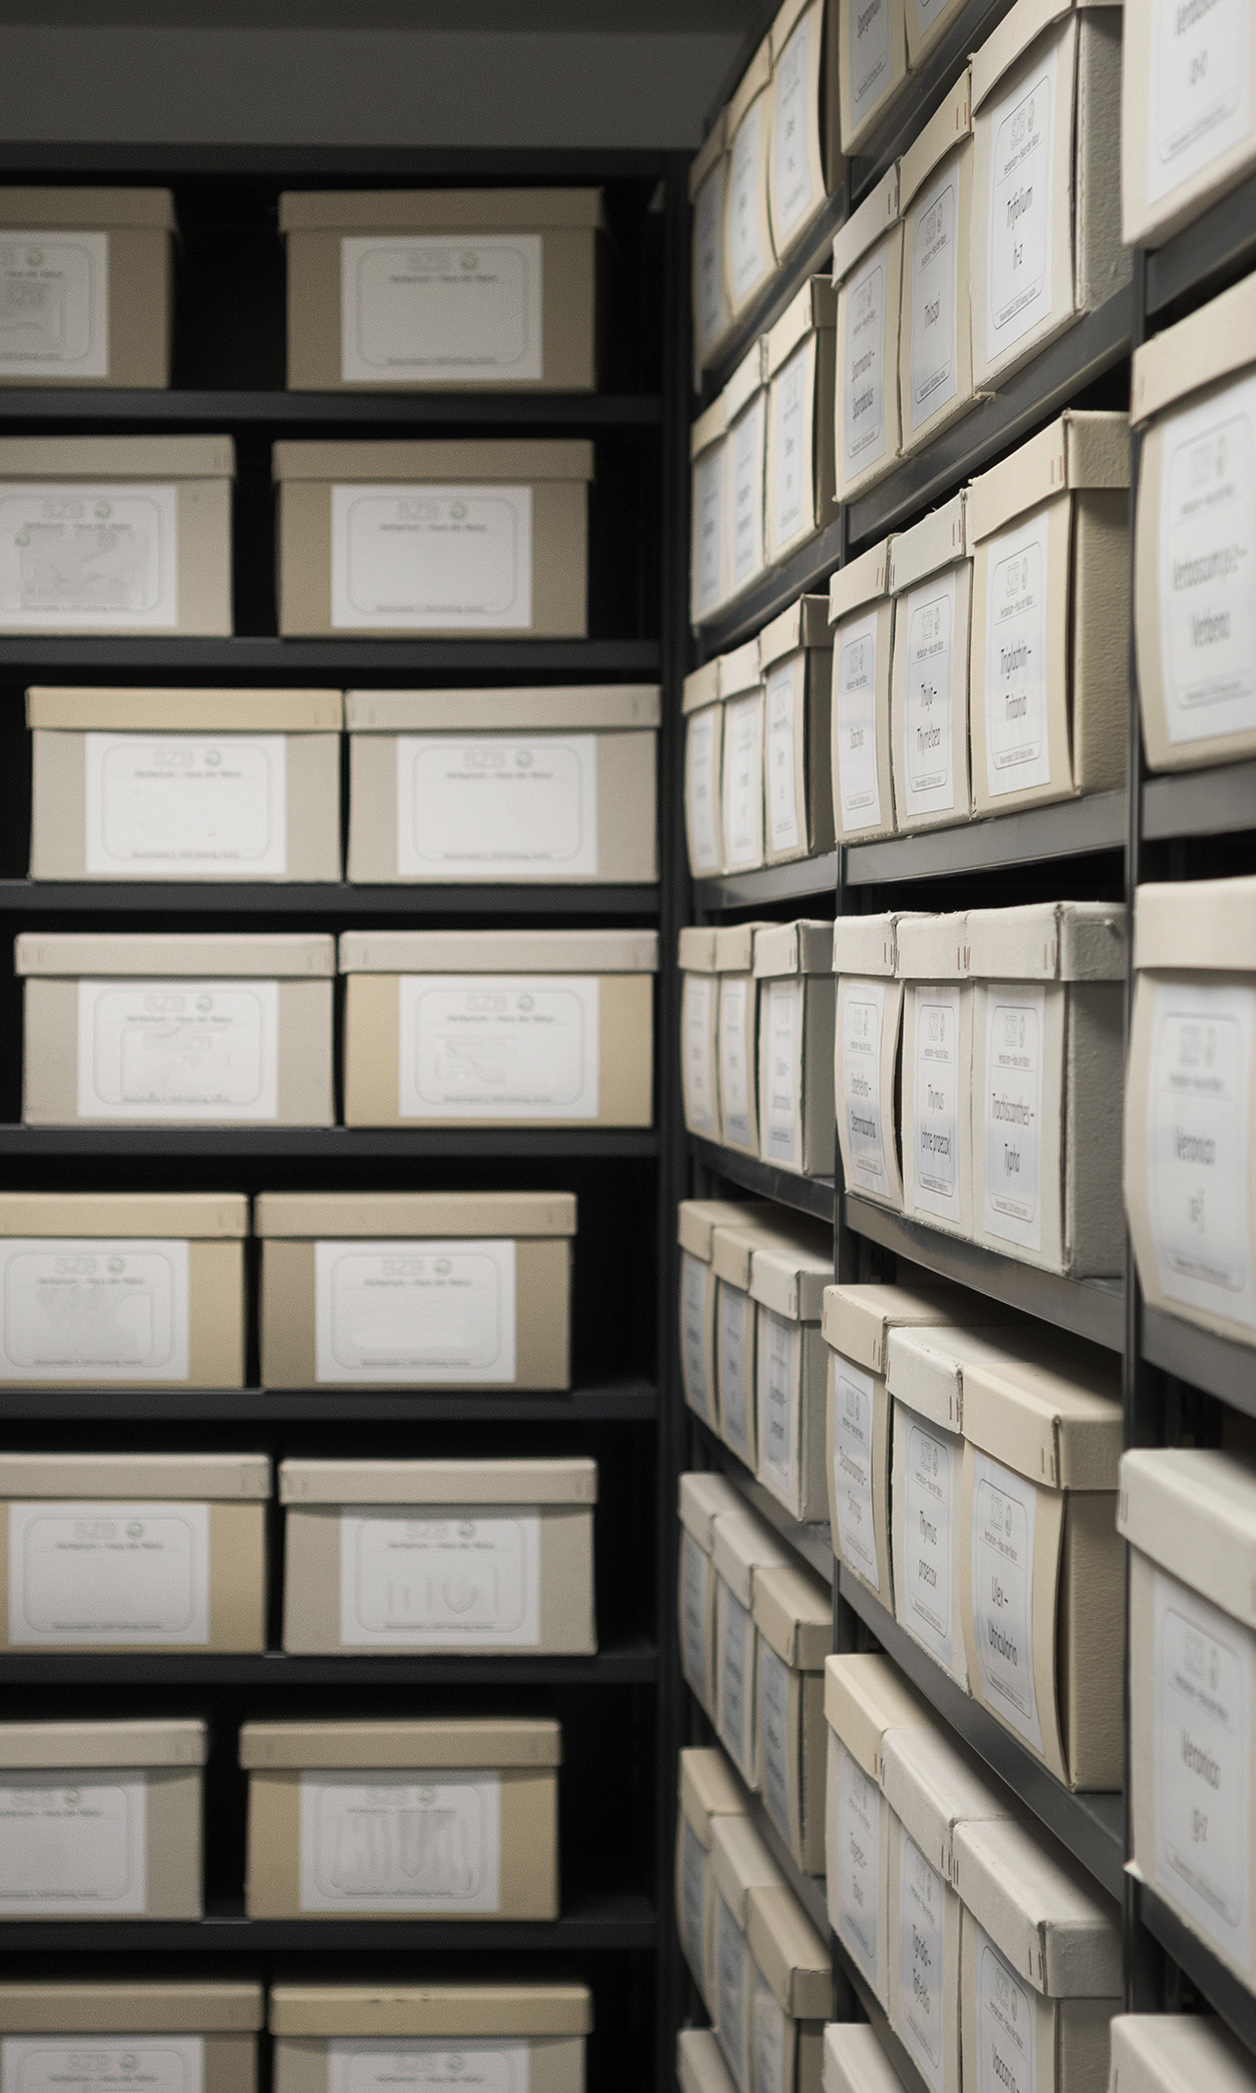 Eliminating the Confidentiality of Certain Police Records